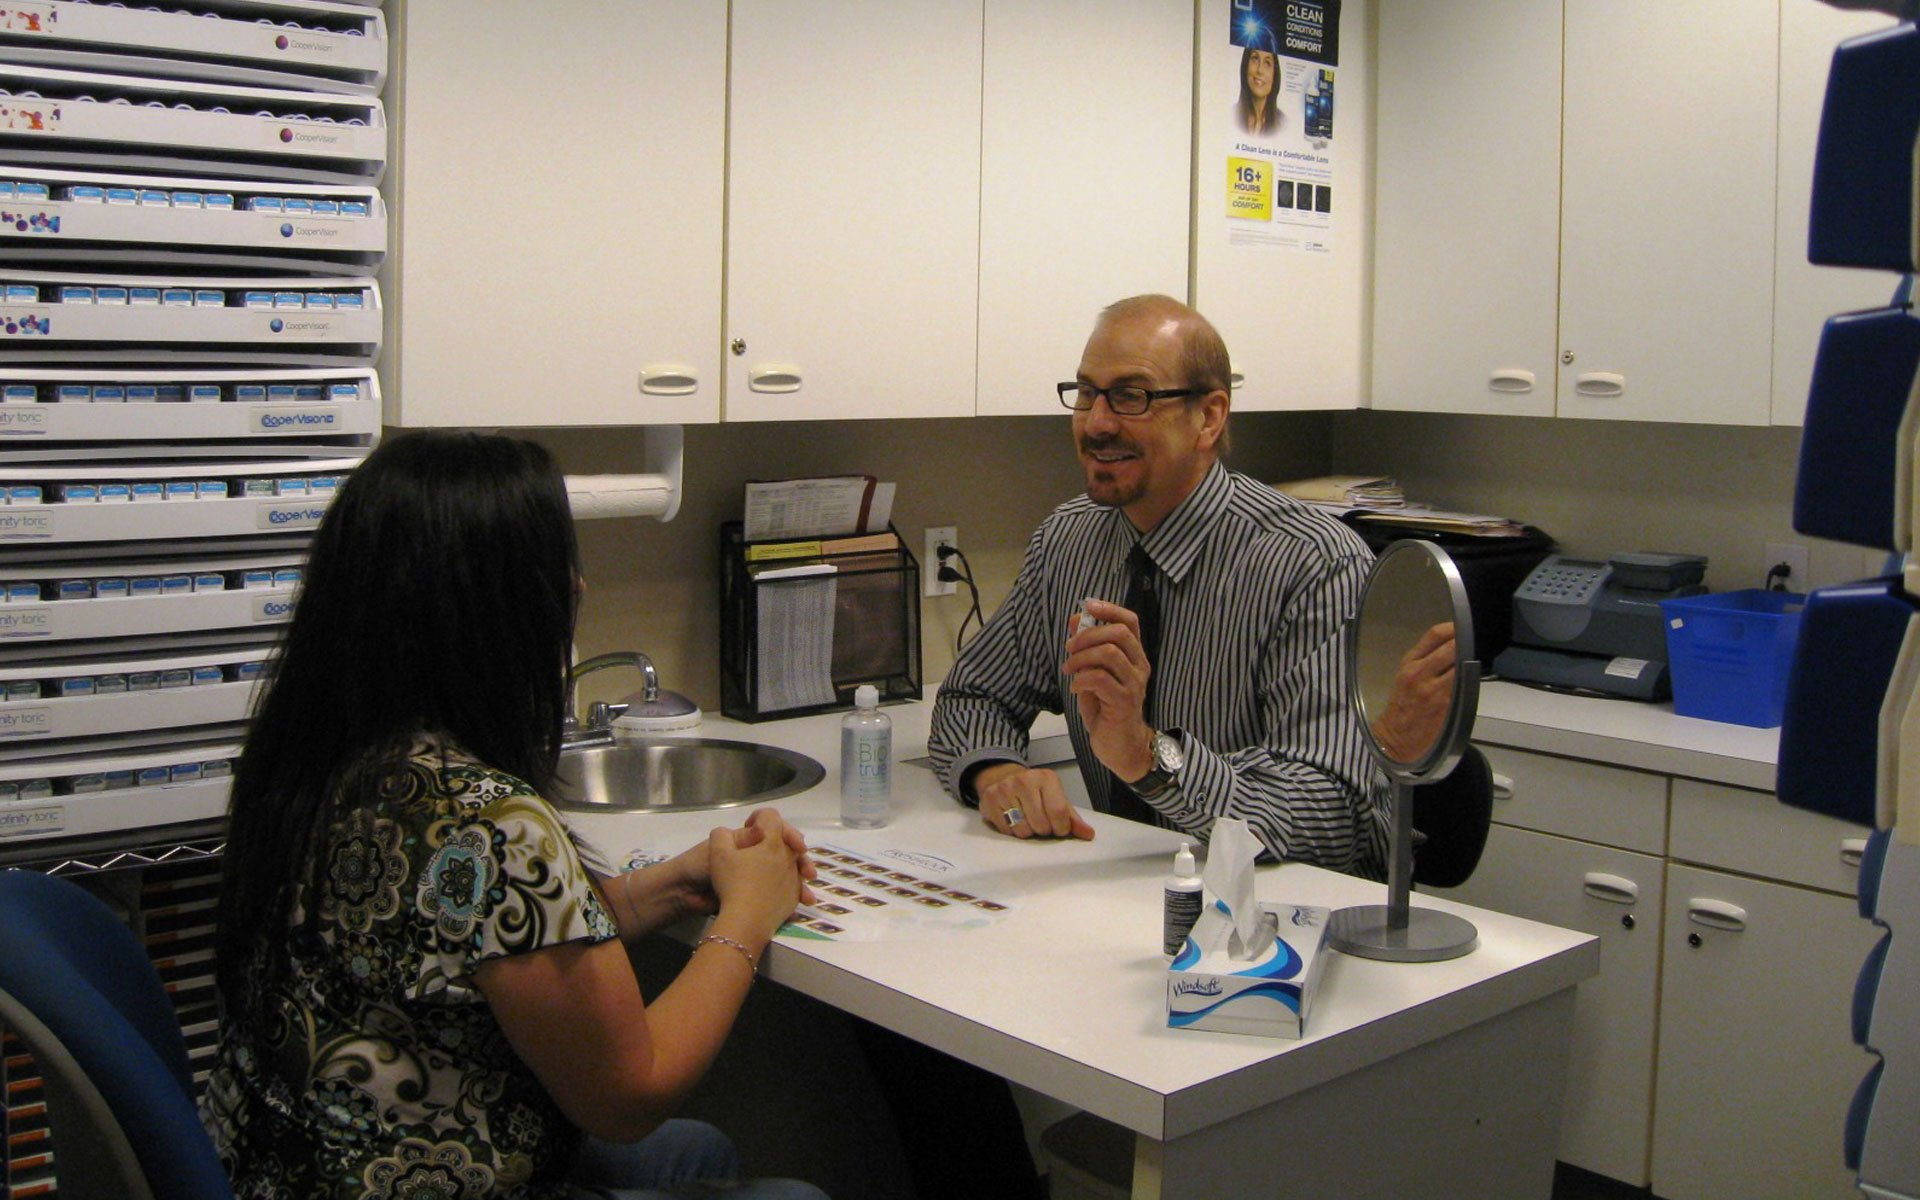 Eye doctor in Greensboro, NC consulting patient